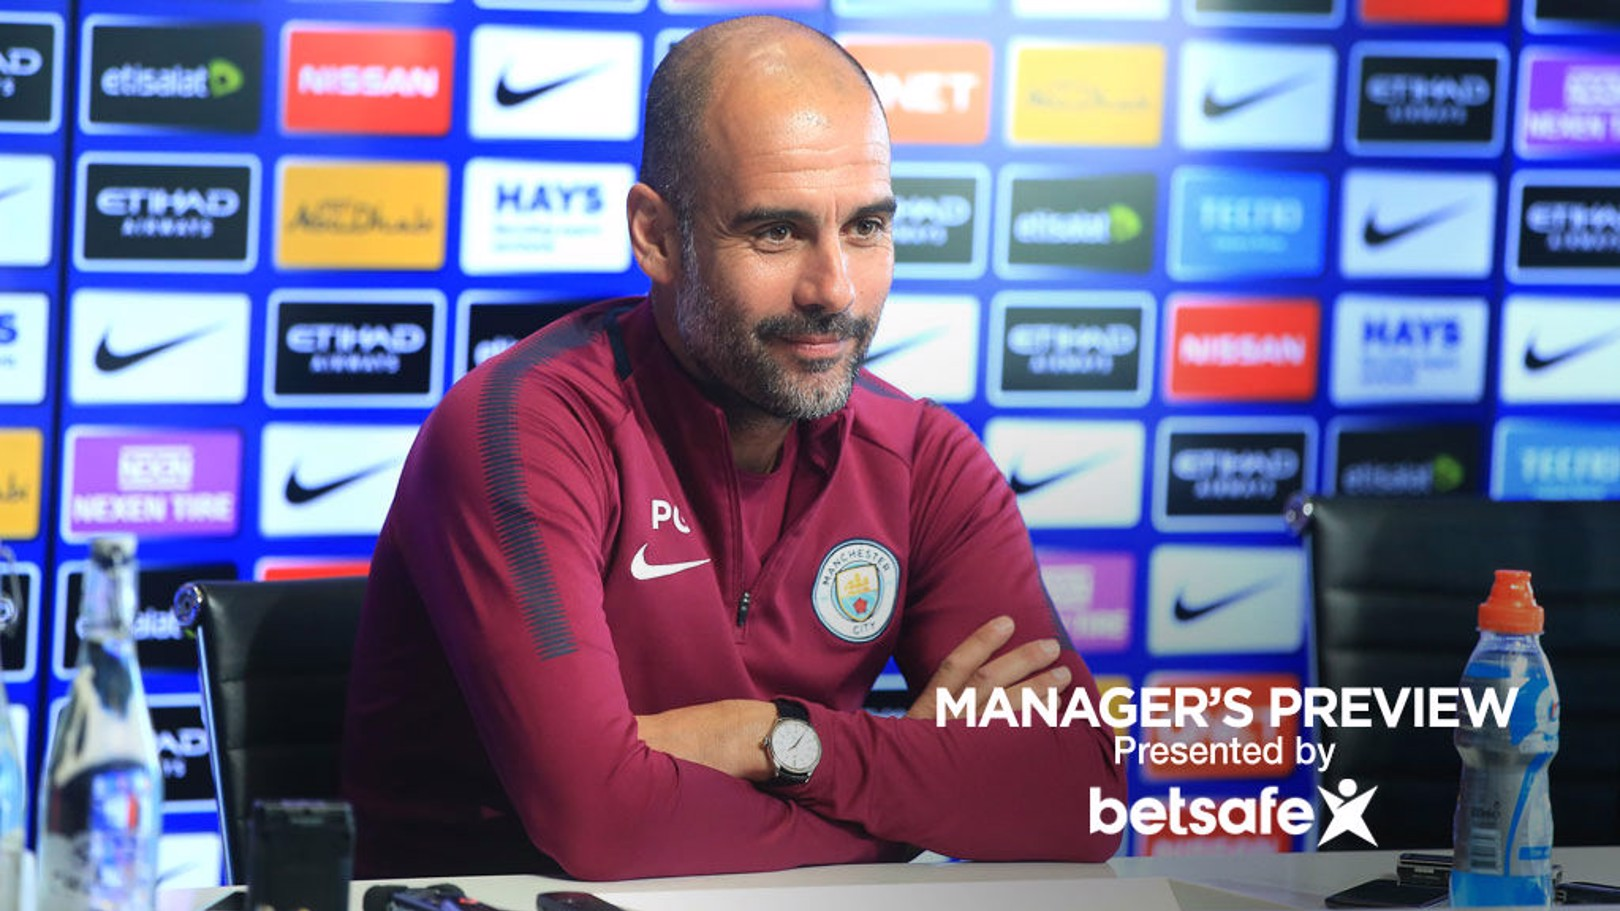 PRESS CONFERENCE: Pep Guardiola chats to journalists before Saturday's game with Leicester.